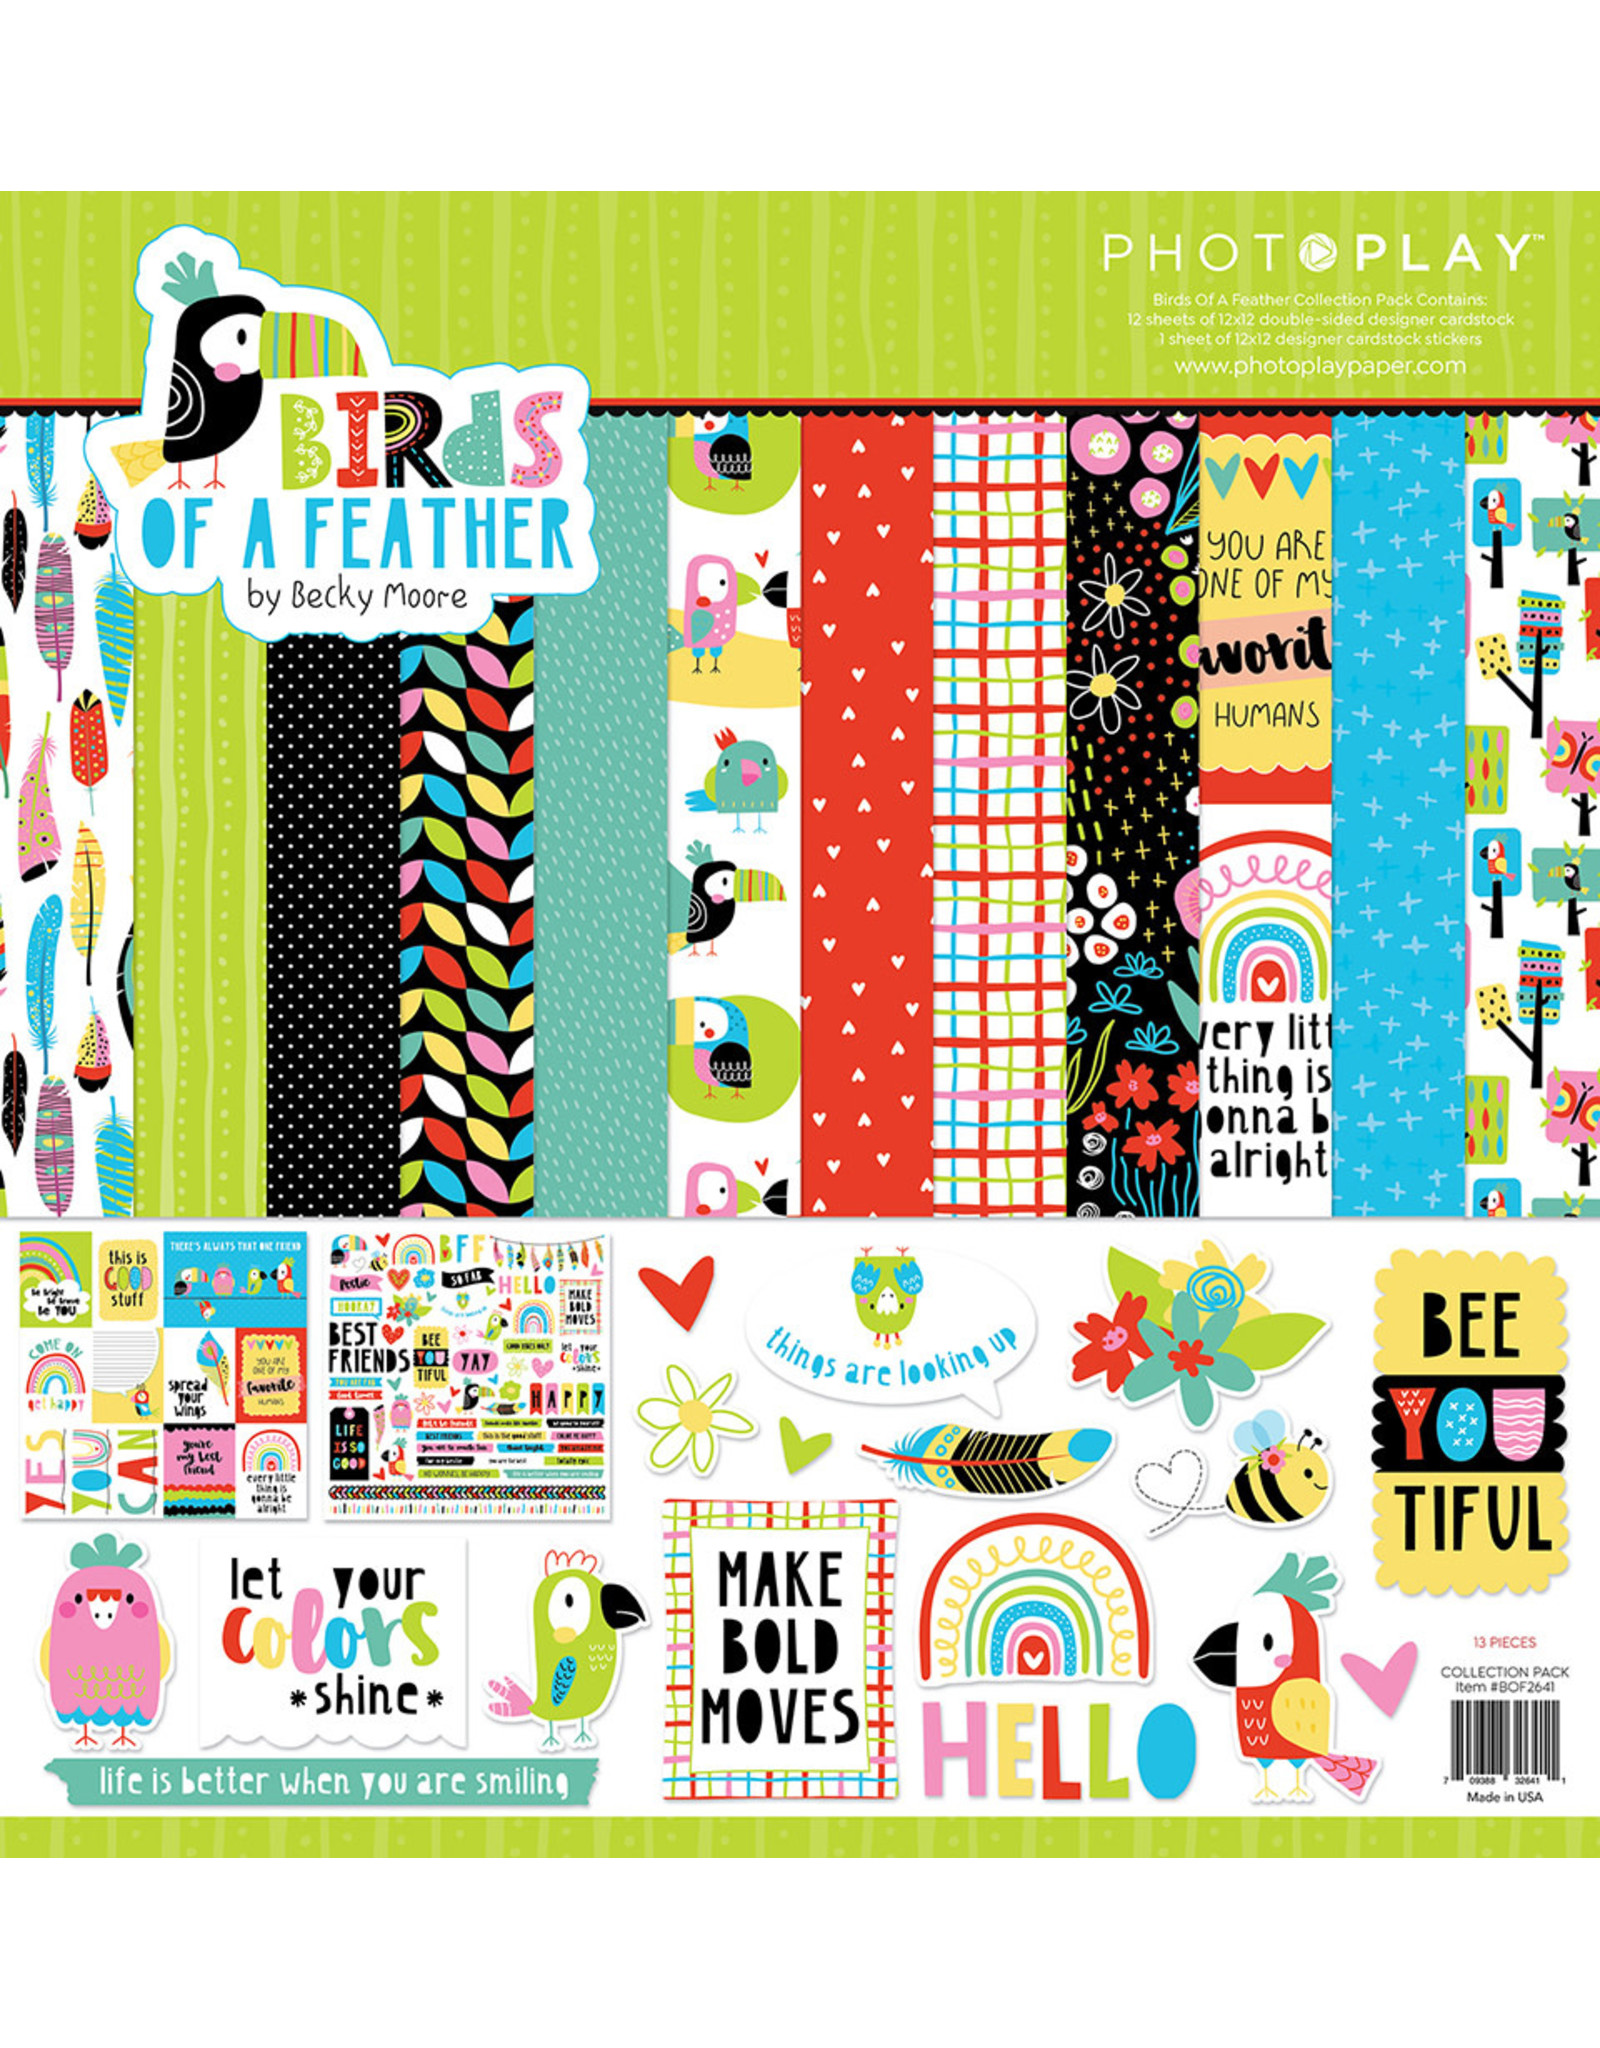 PHOTOPLAY Birds of a Feather - Collection Pack